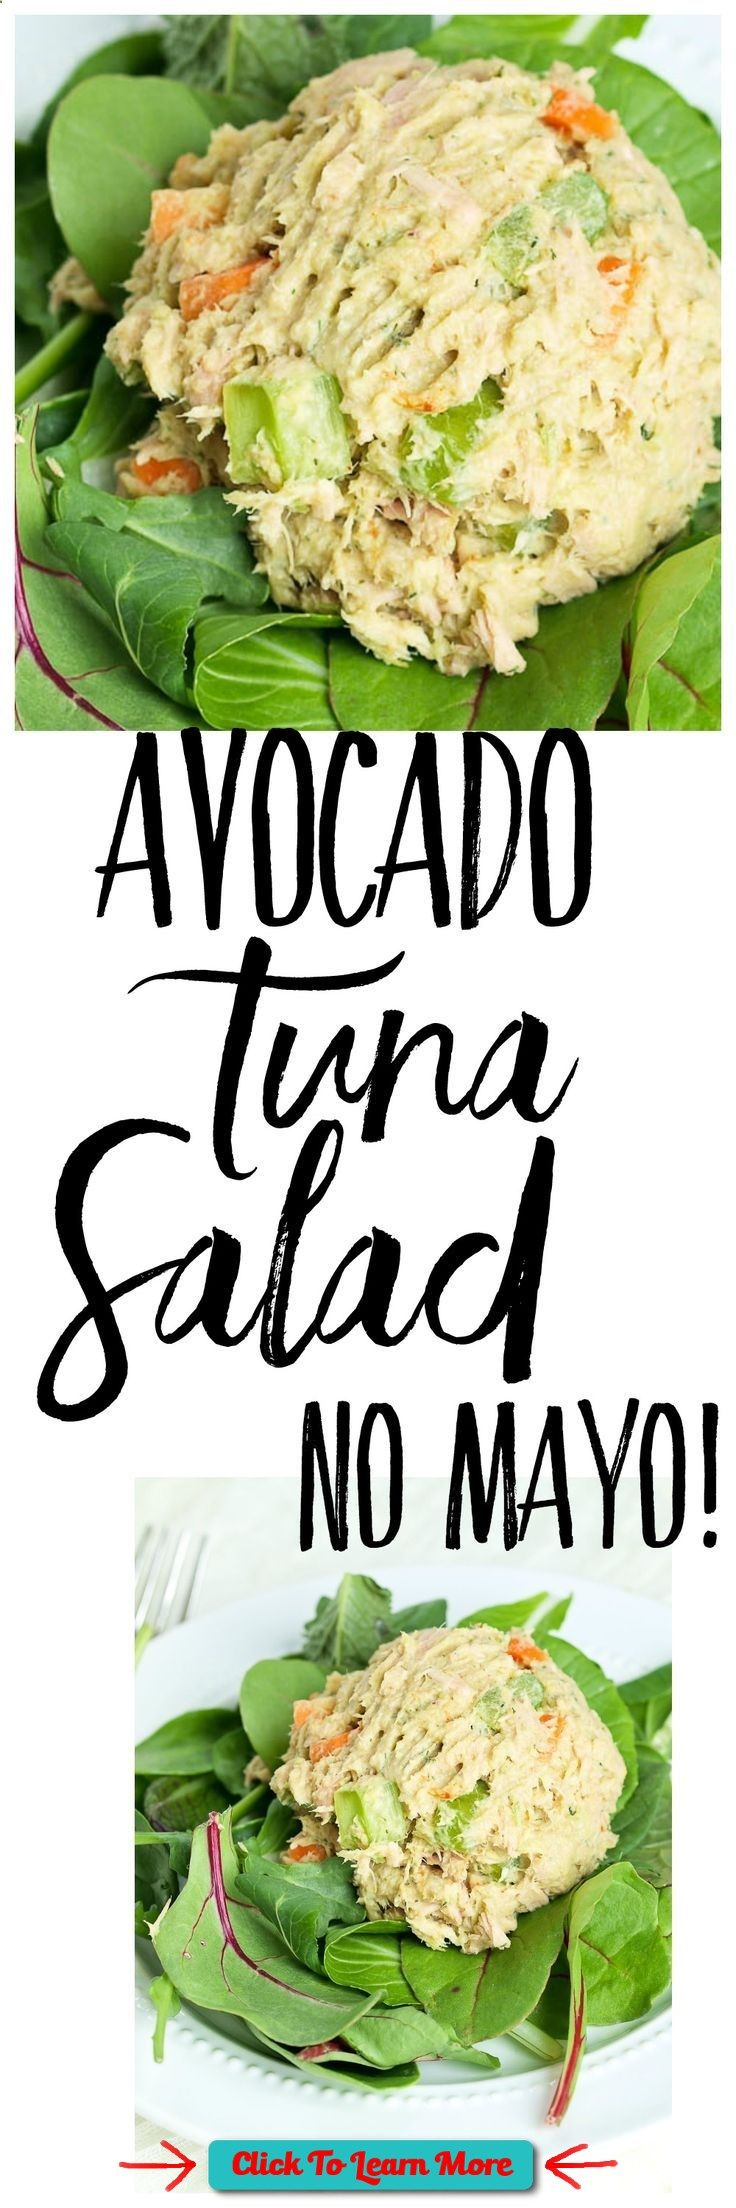 This Avocado Tuna Salad recipe is made with no mayo! This makes a great high-protein, low-carb lunch idea! Great paleo lunch recipe. #health #fitness #weightloss #healthyrecipes #weightlossrecipes